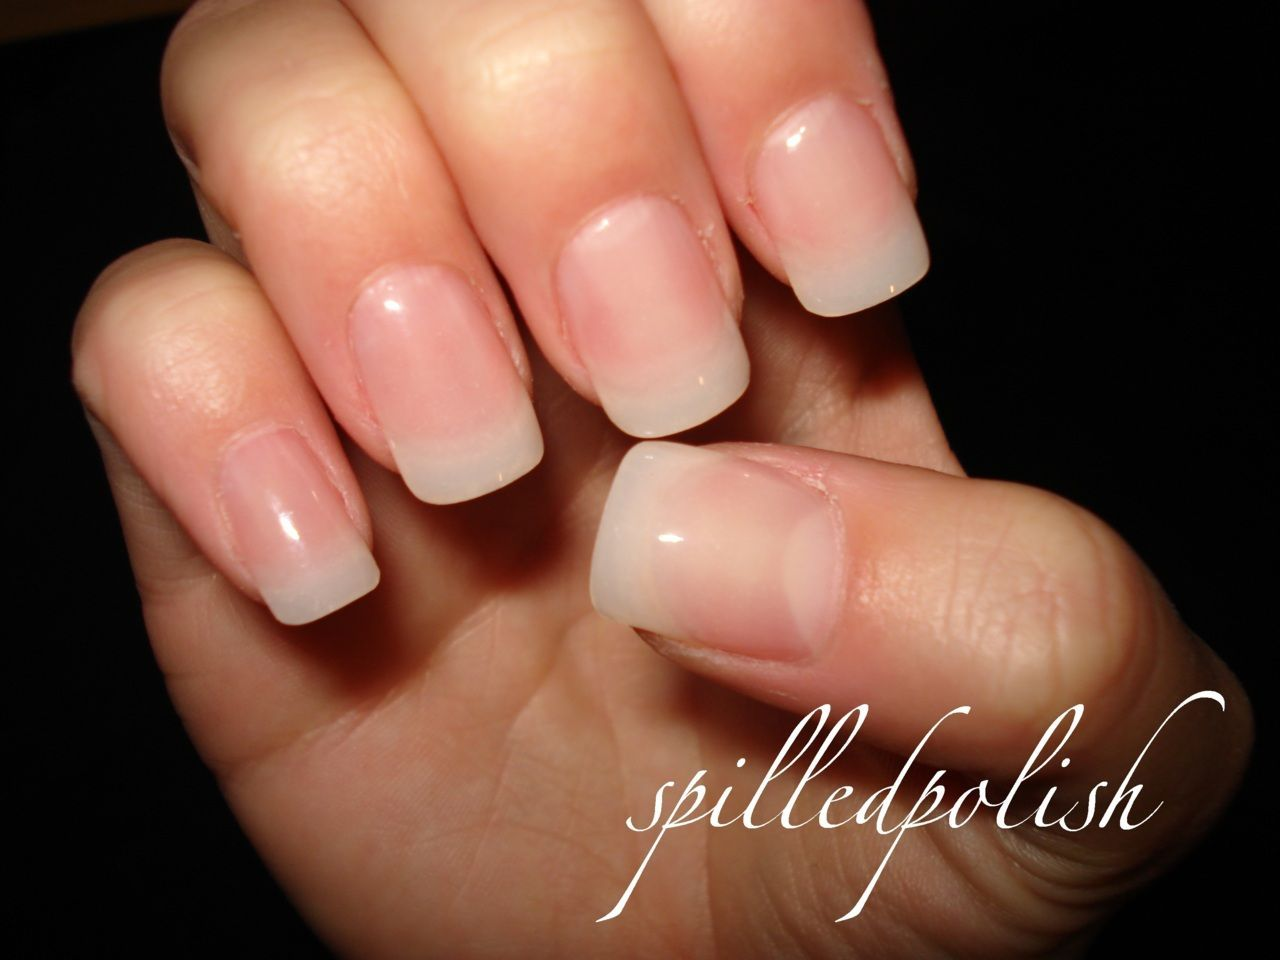 Classic Nails Natural Acrylic Nails Clear Gel Nails Natural Looking Acrylic Nails